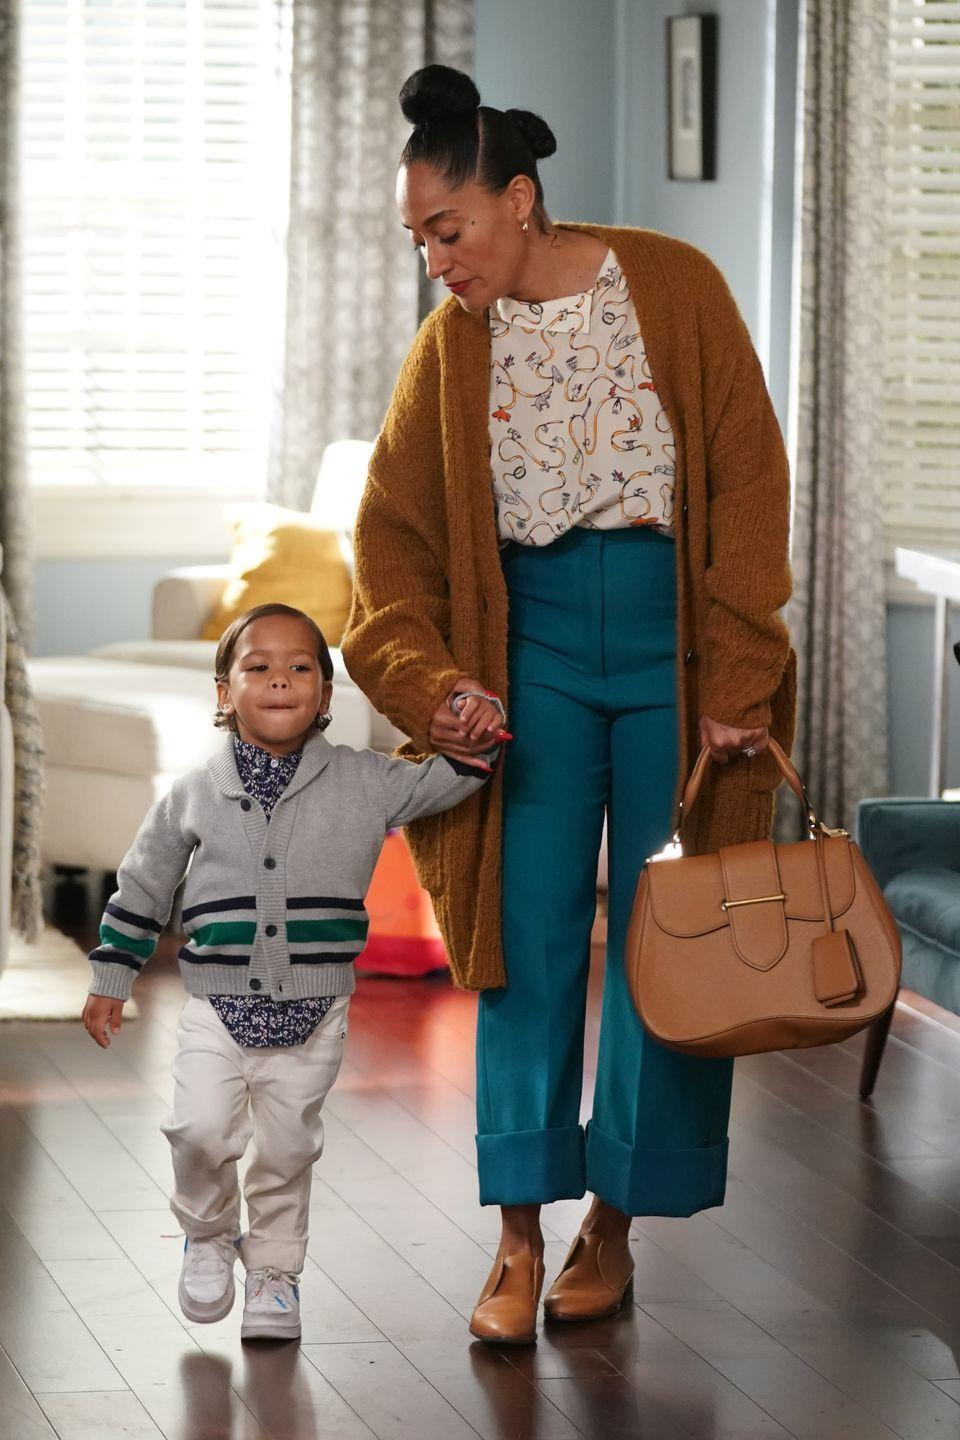 <p>Tracee Ellis Ross has been showing up for Black girls everywhere since the early 2000s. In the show <em>Girlfriends, </em>she played a lawyer and showed us that natural hair belongs in the workplace. Currently, she plays a mom of five on the ABC show <em>Black-ish, </em>where we see the in and outs of taking care of Black hair. From wash-day to at-home styling, this show relates to Black women everywhere. </p>